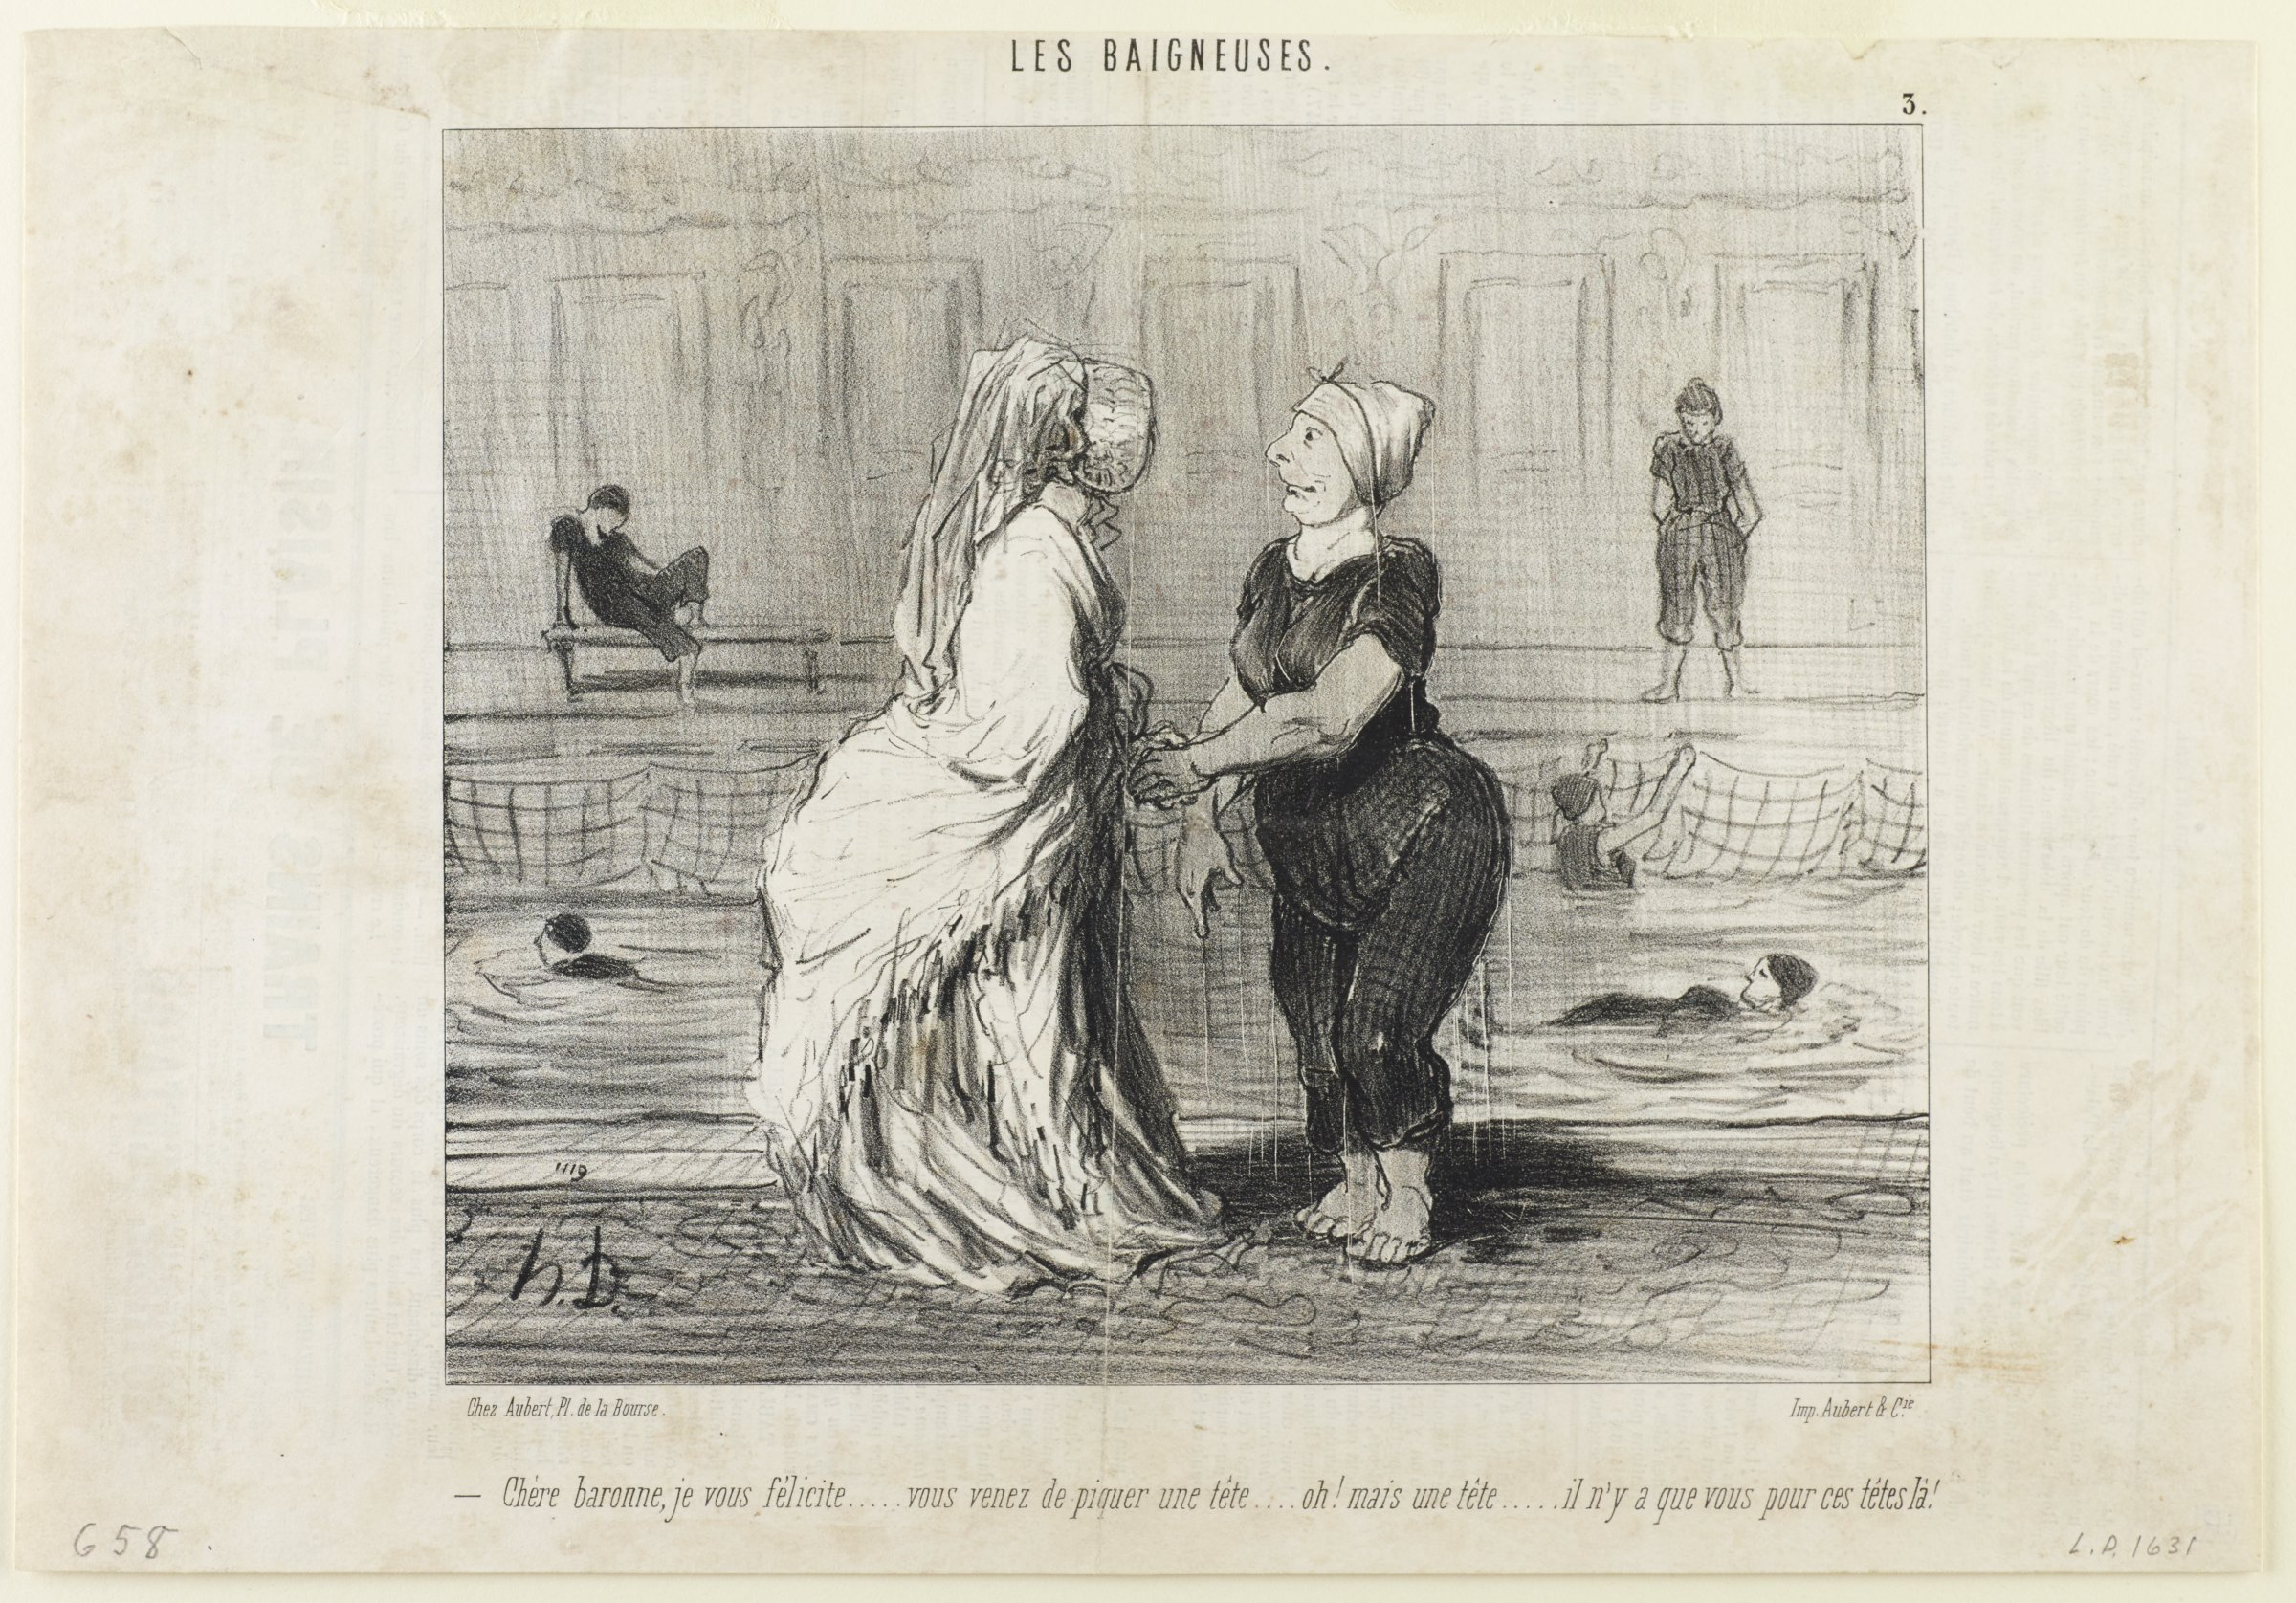 On the left, a lady stands wearing a full length ensemble. On the right, a lady stands in a bathing suit dripping with water. They are in conversation with one another. In the background is a swimming pool where other ladies in bathing suits are engaging in activity.